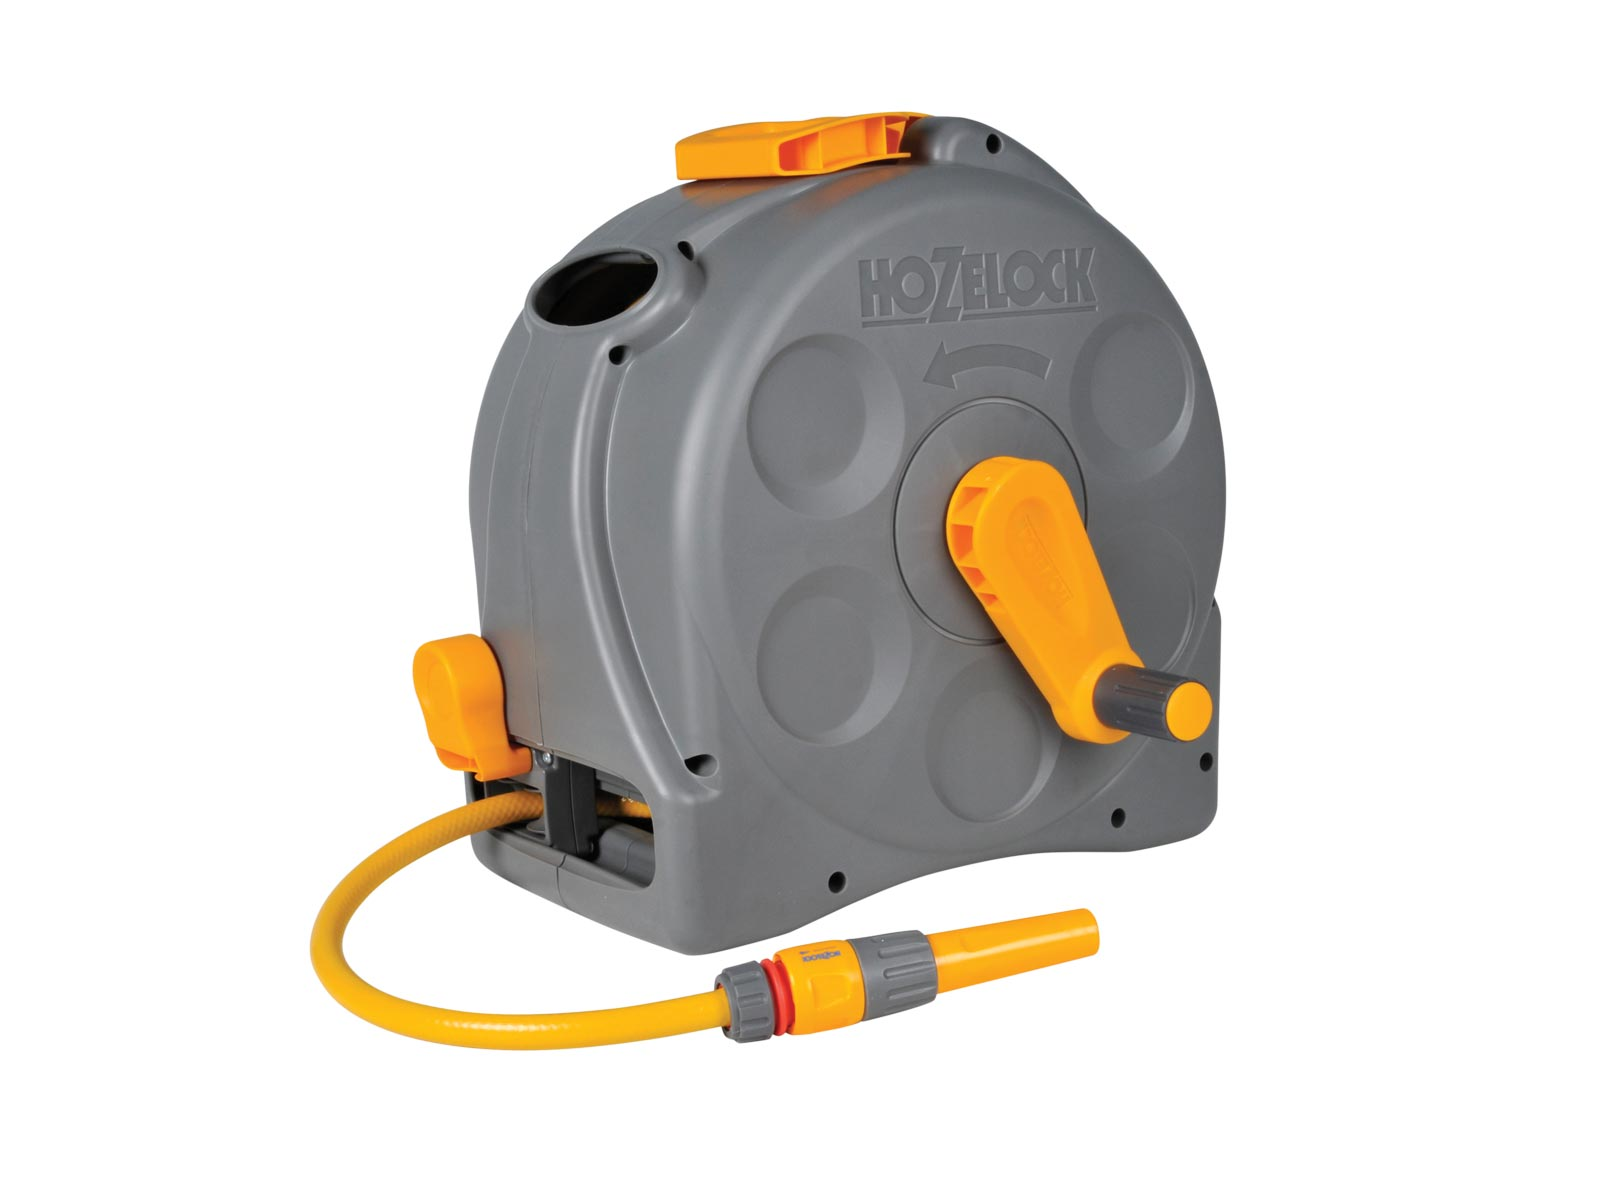 Hozelock 2 in 1 Floor & Wall Mounted Compact Enclosed Hose Reel, 25m Hose, Fittings, Nozzle